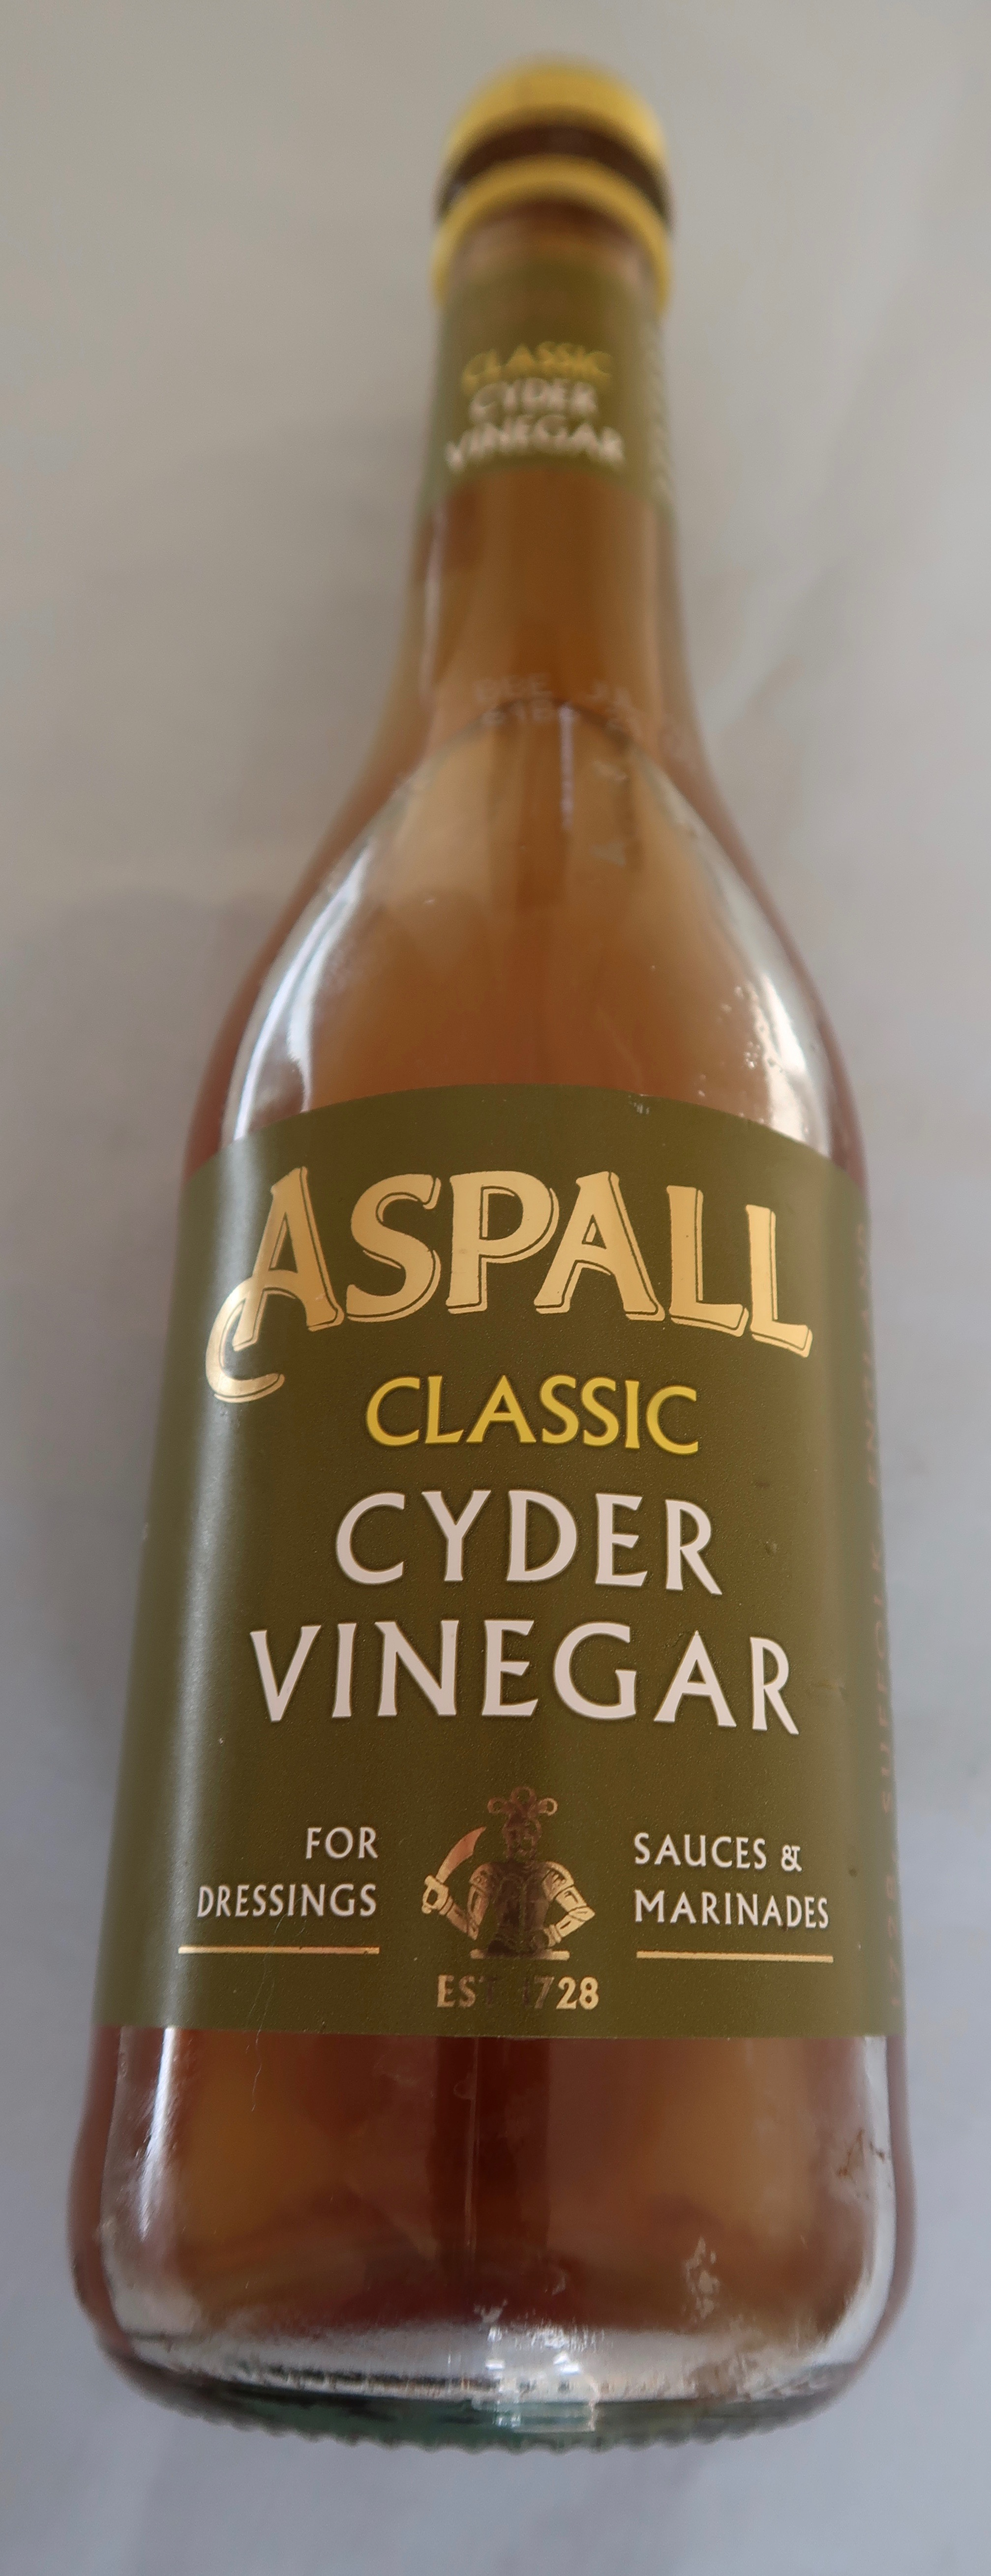 There are many brands, I am currently trying Aspall